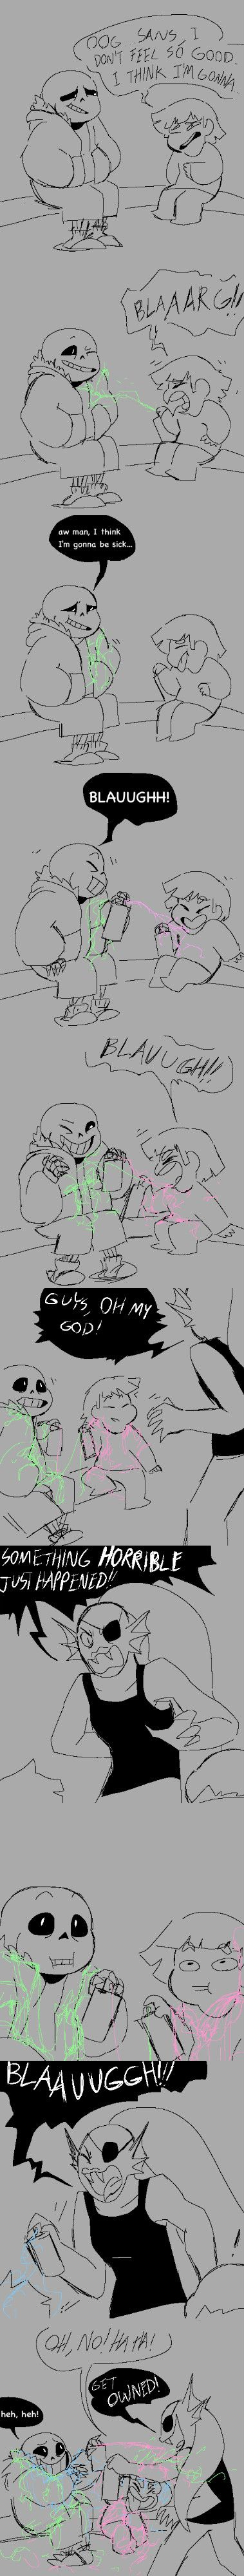 Gravity Falls and Undertale crossover